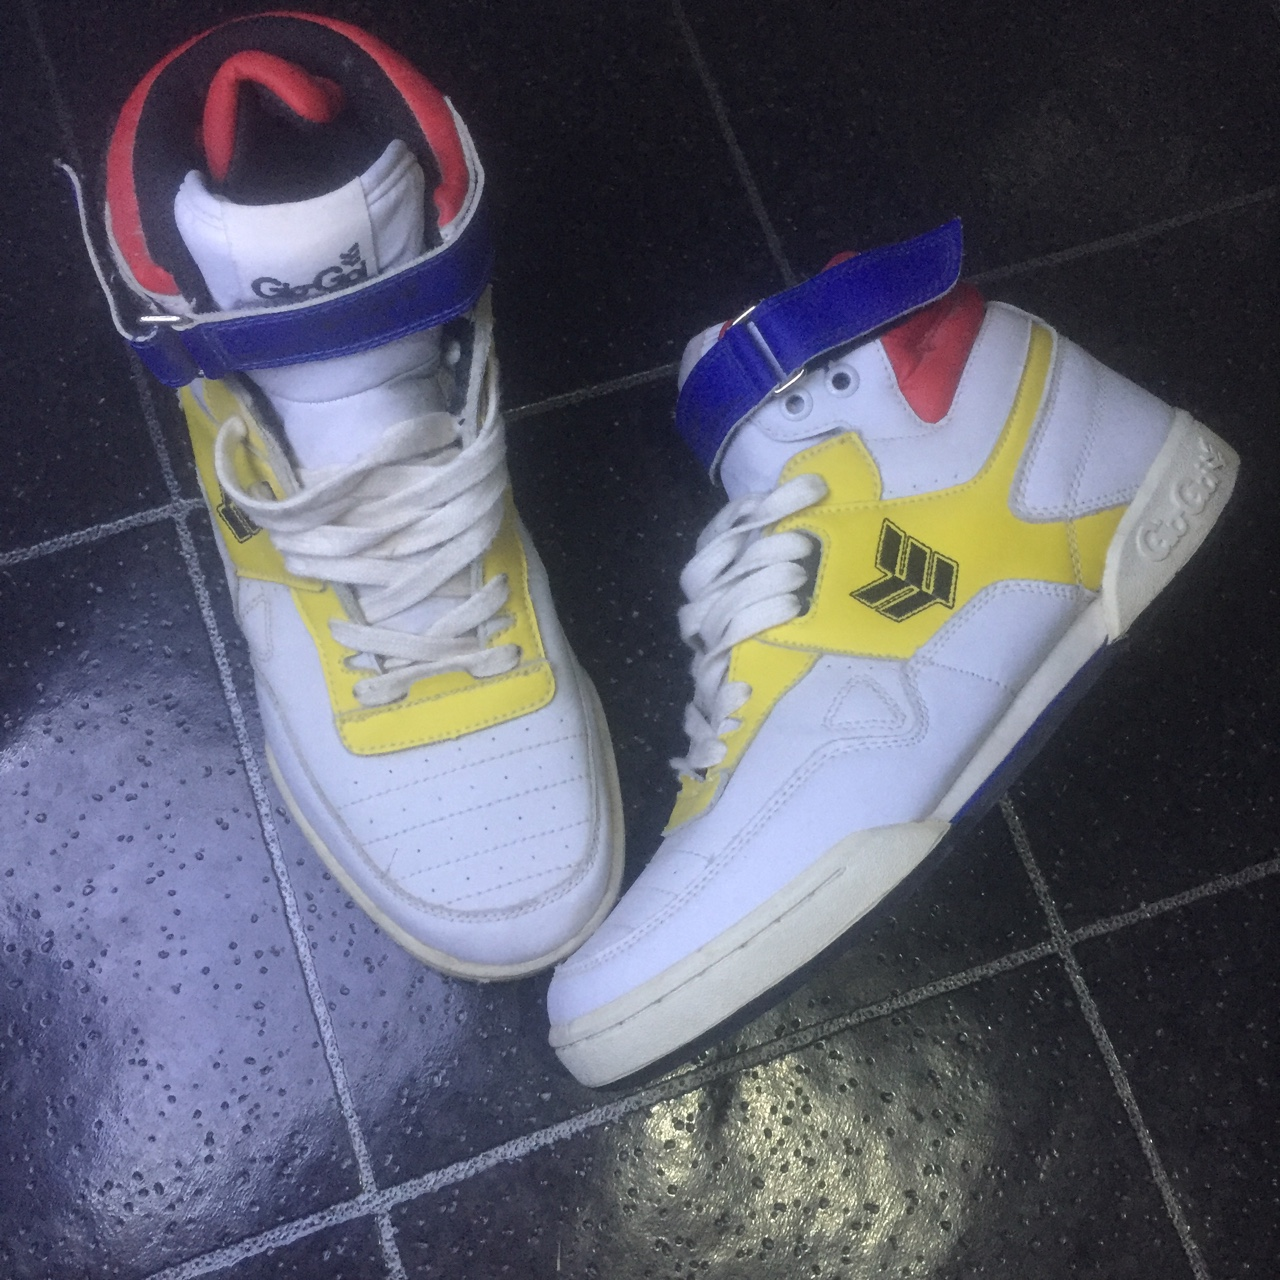 Vintage Gio-goi high top trainers In